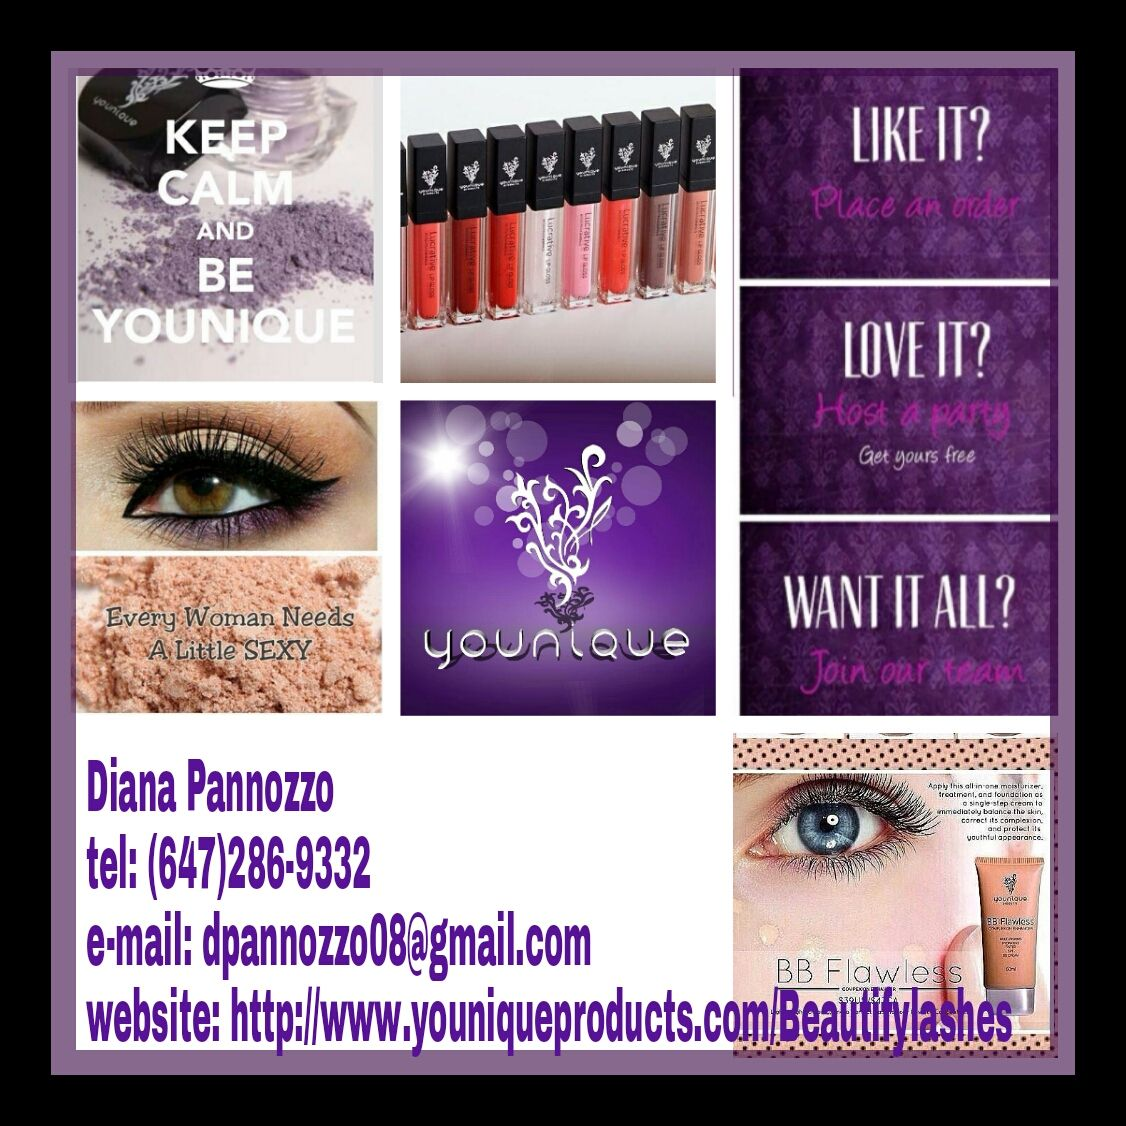 Tired of applying false lashes? Try out the 3-D fibre lash mascara! All natural products. Be Younique!! BEST MASCARA IN THE MARKET!